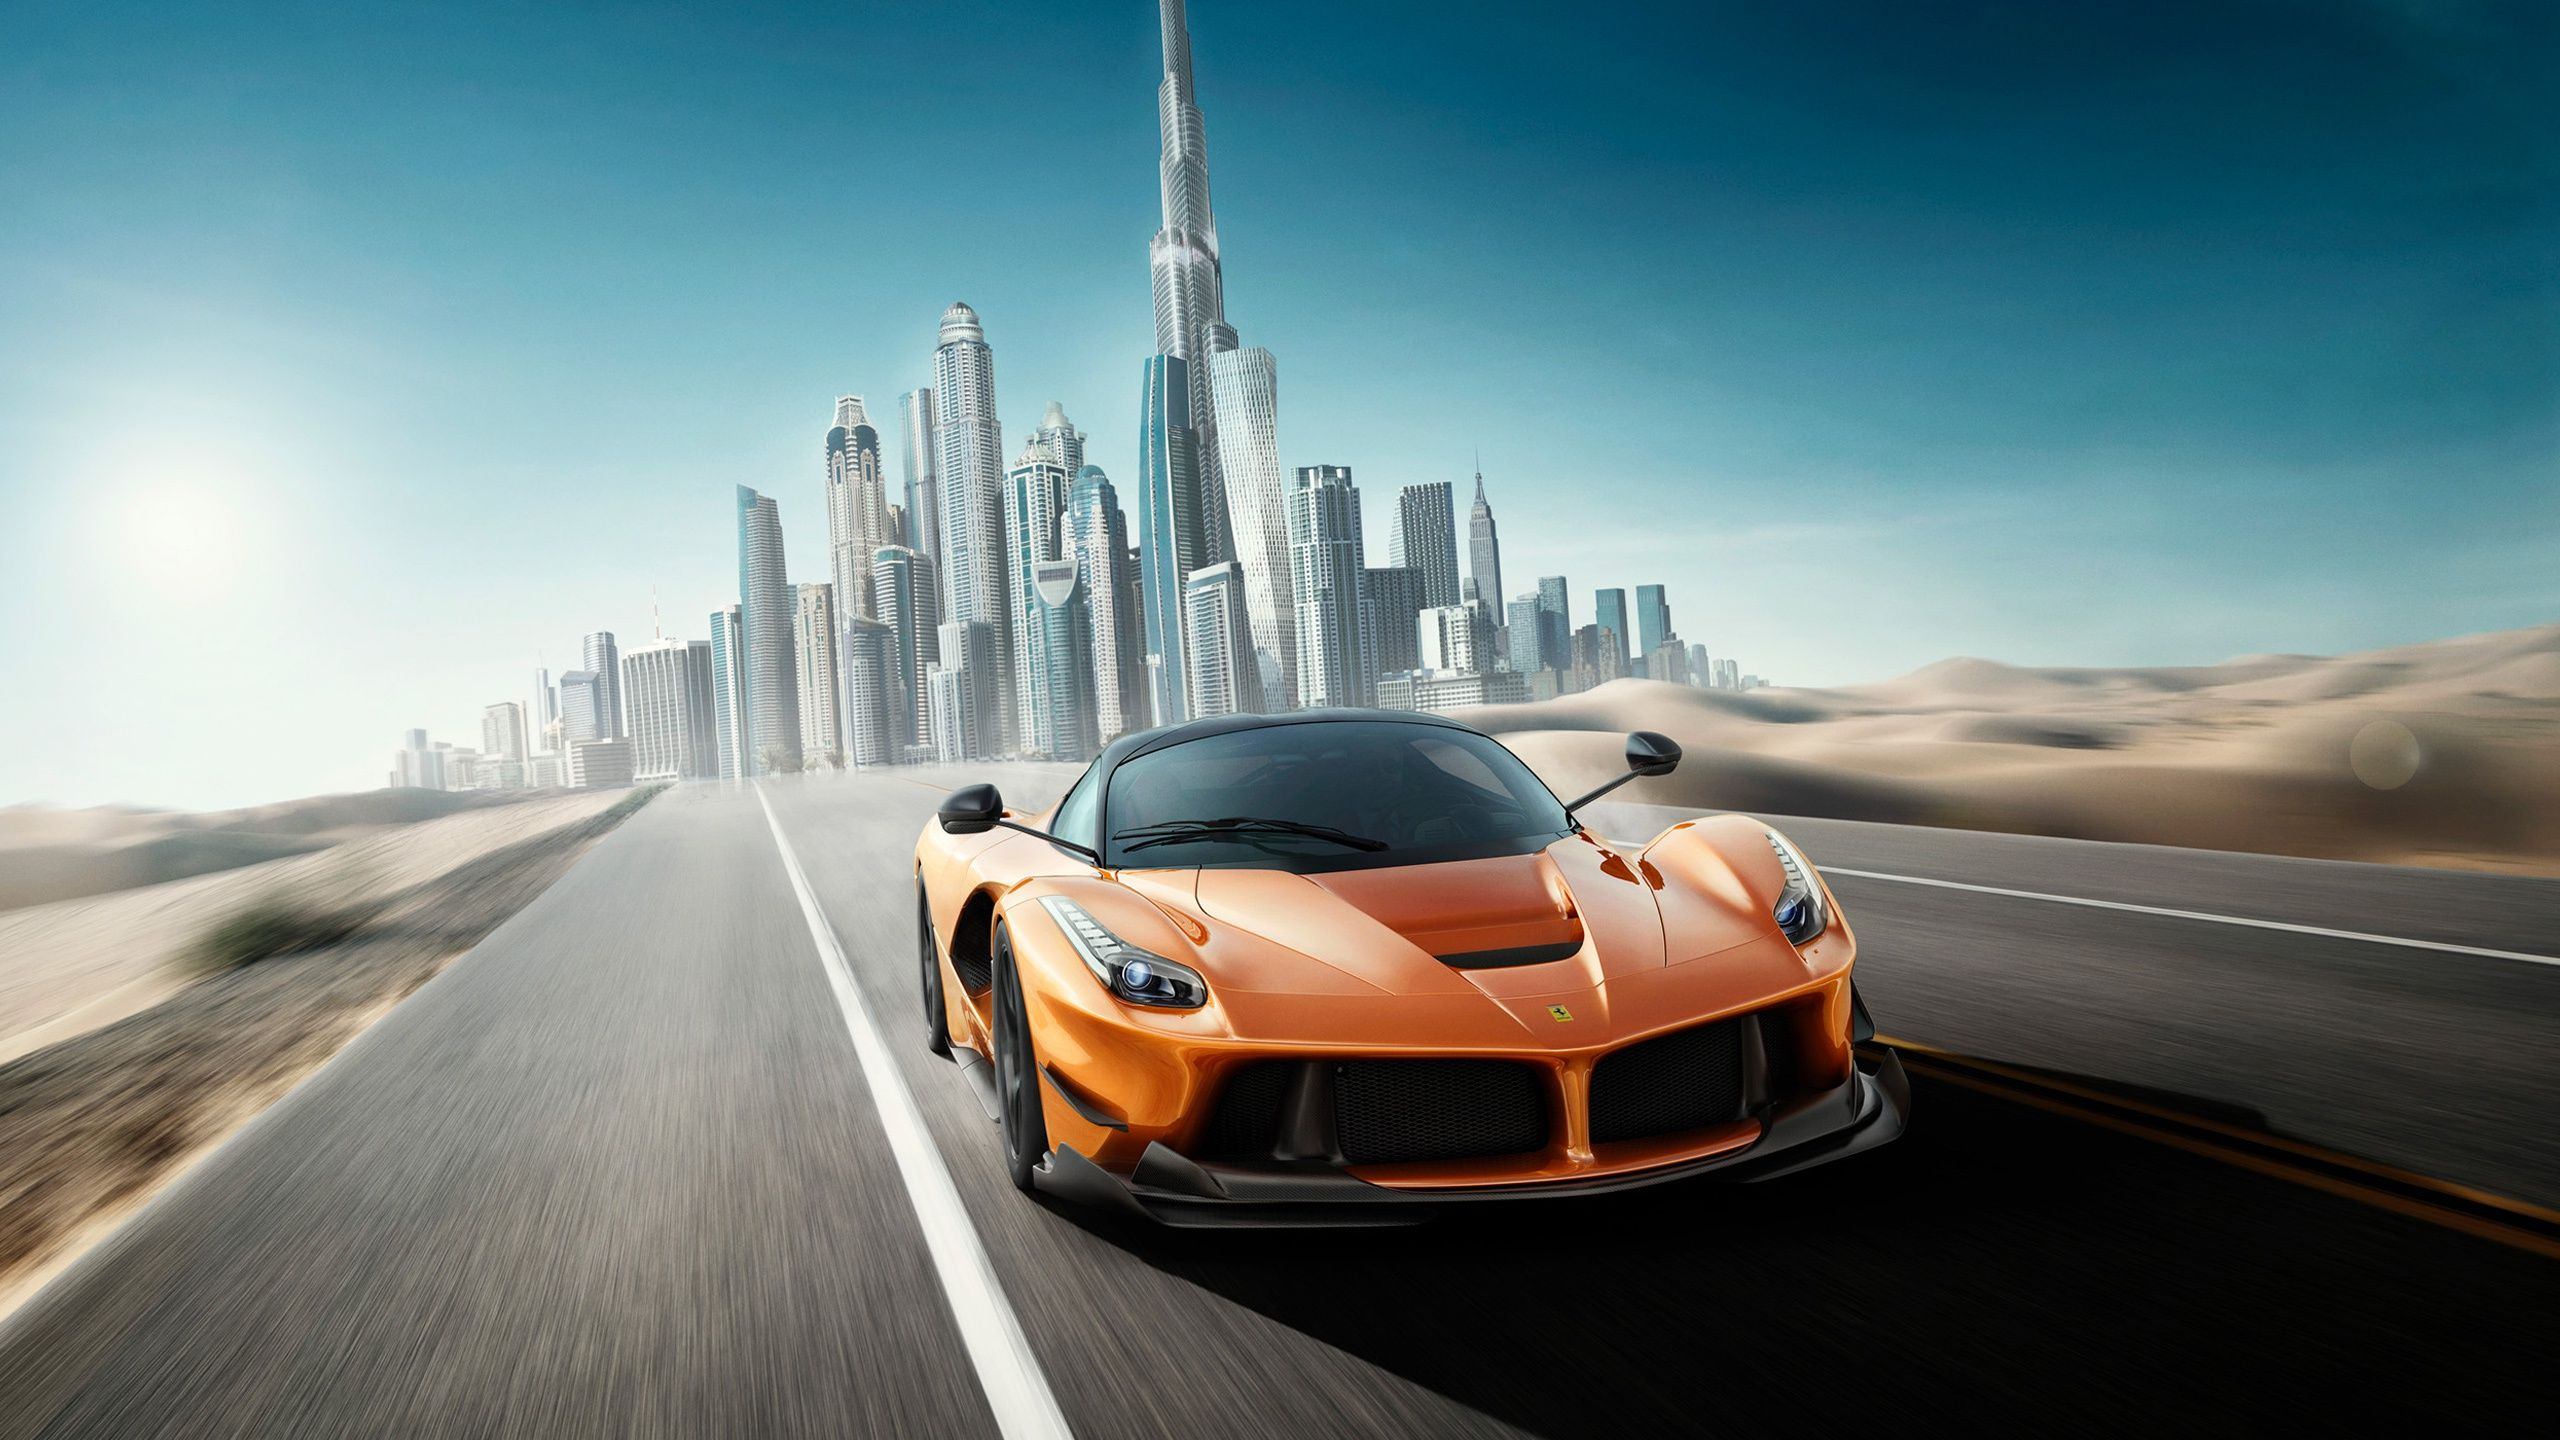 32k Cars Wallpapers Top Free 32k Cars Backgrounds Wallpaperaccess